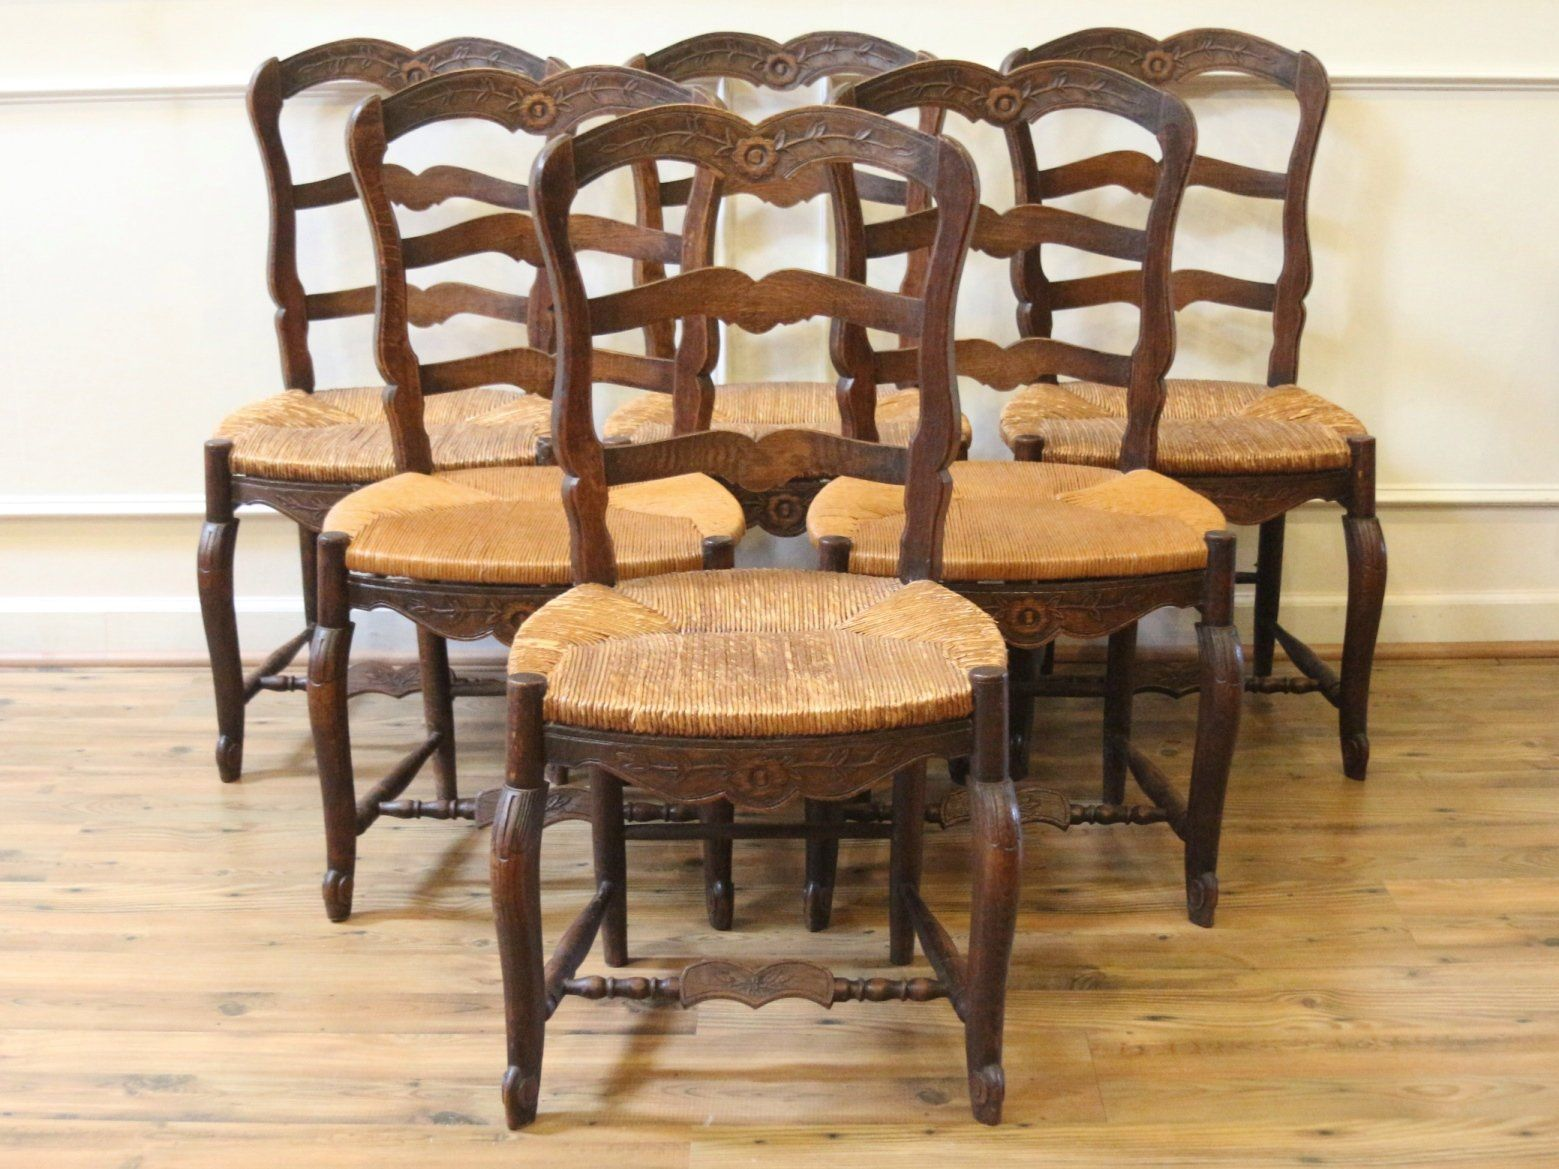 Antique French Country Carved Oak Dining Chairs With Straw